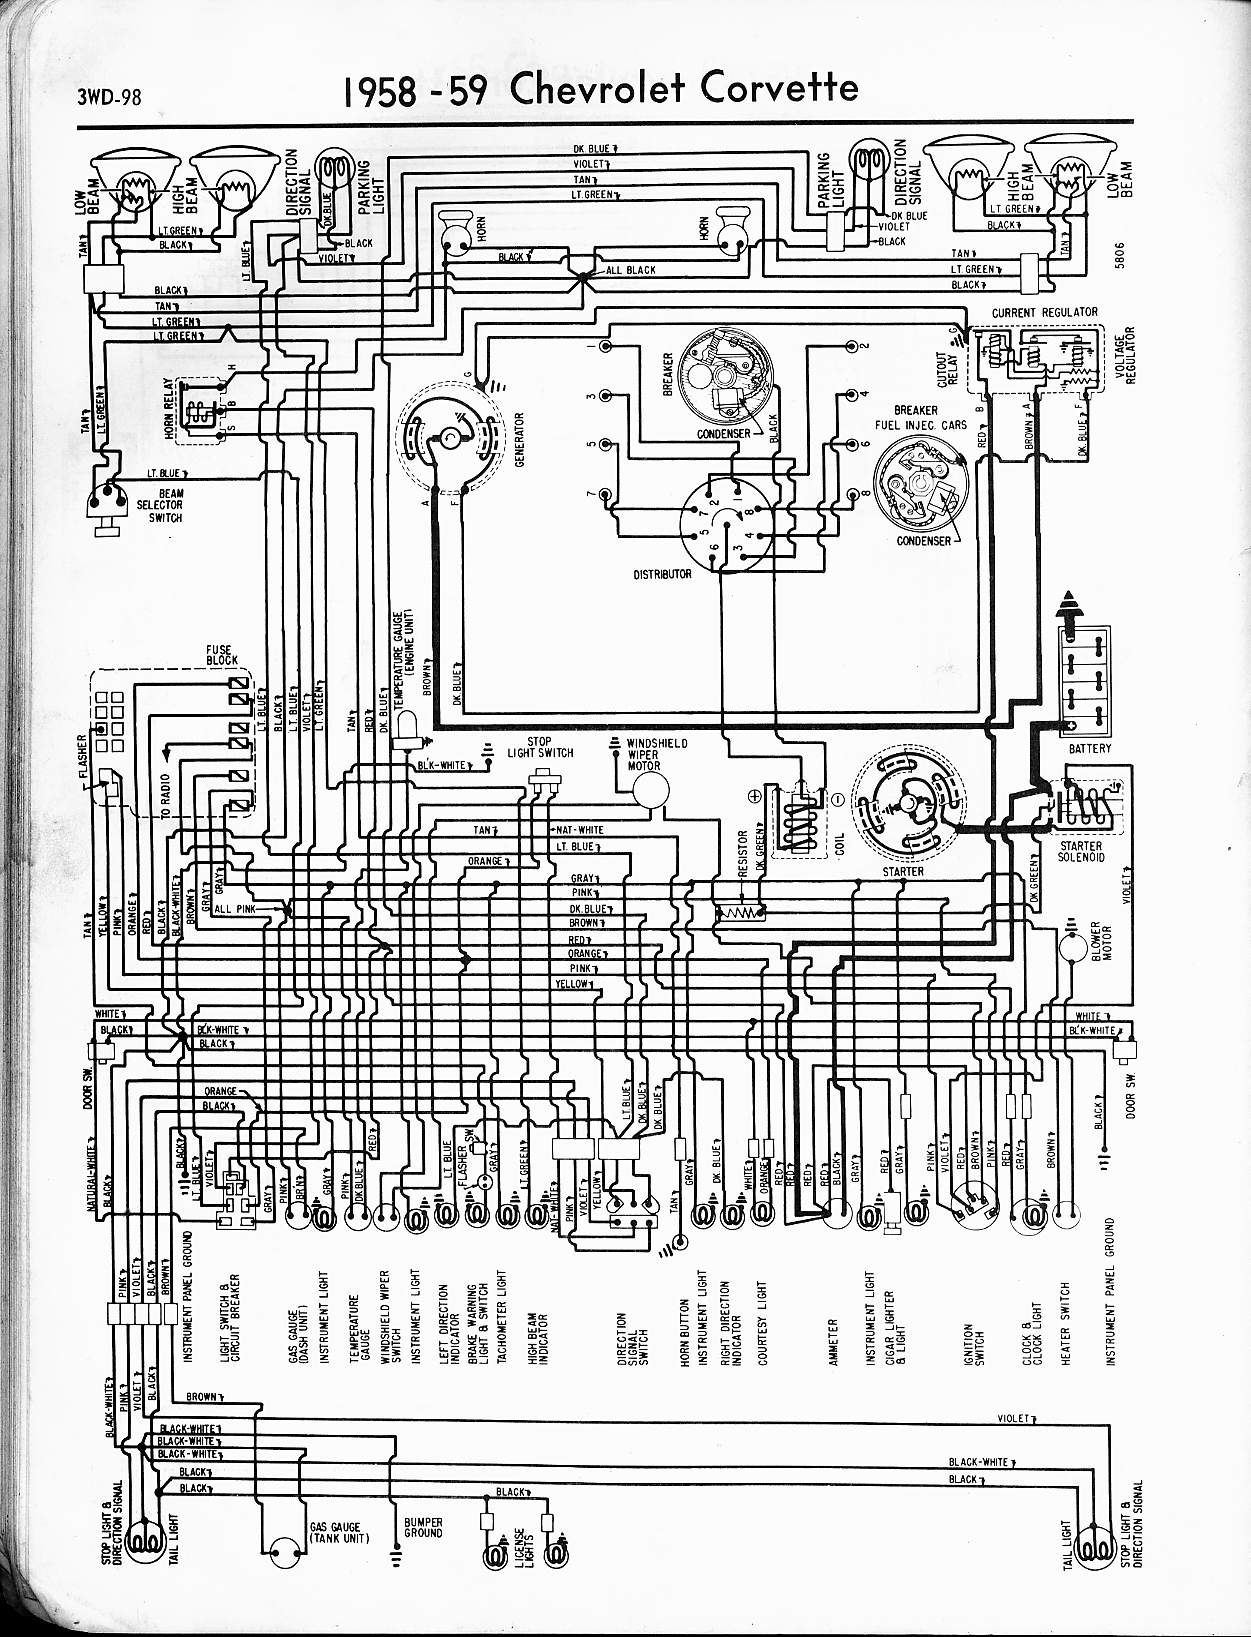 MWireChev58_3WD 098 57 65 chevy wiring diagrams 1965 C10 Wiring-Diagram at fashall.co